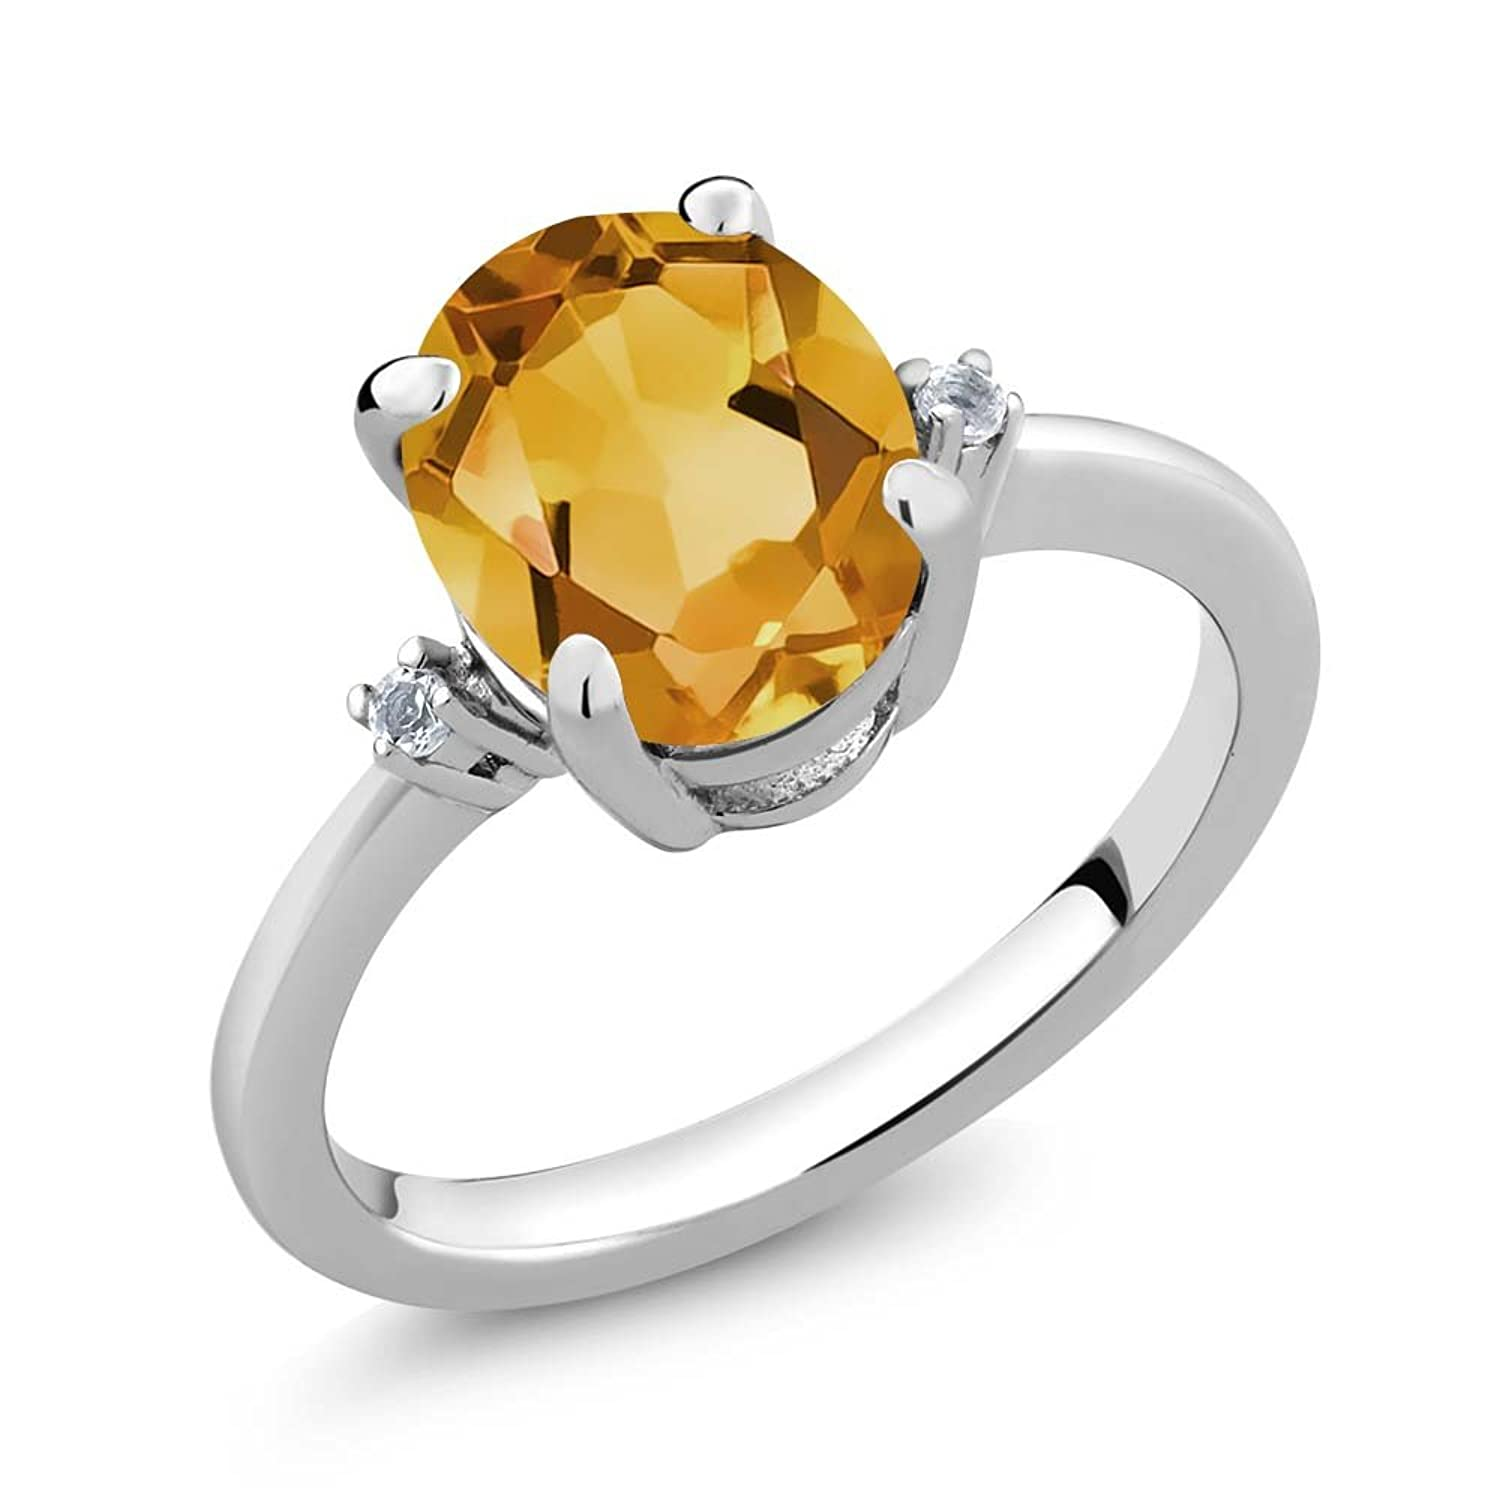 2.52 Ct Oval Yellow Citrine & White Topaz Gemstone Birthstone Women 925 Sterling Silver Ring (Available in size 5, 6, 7, 8, 9)